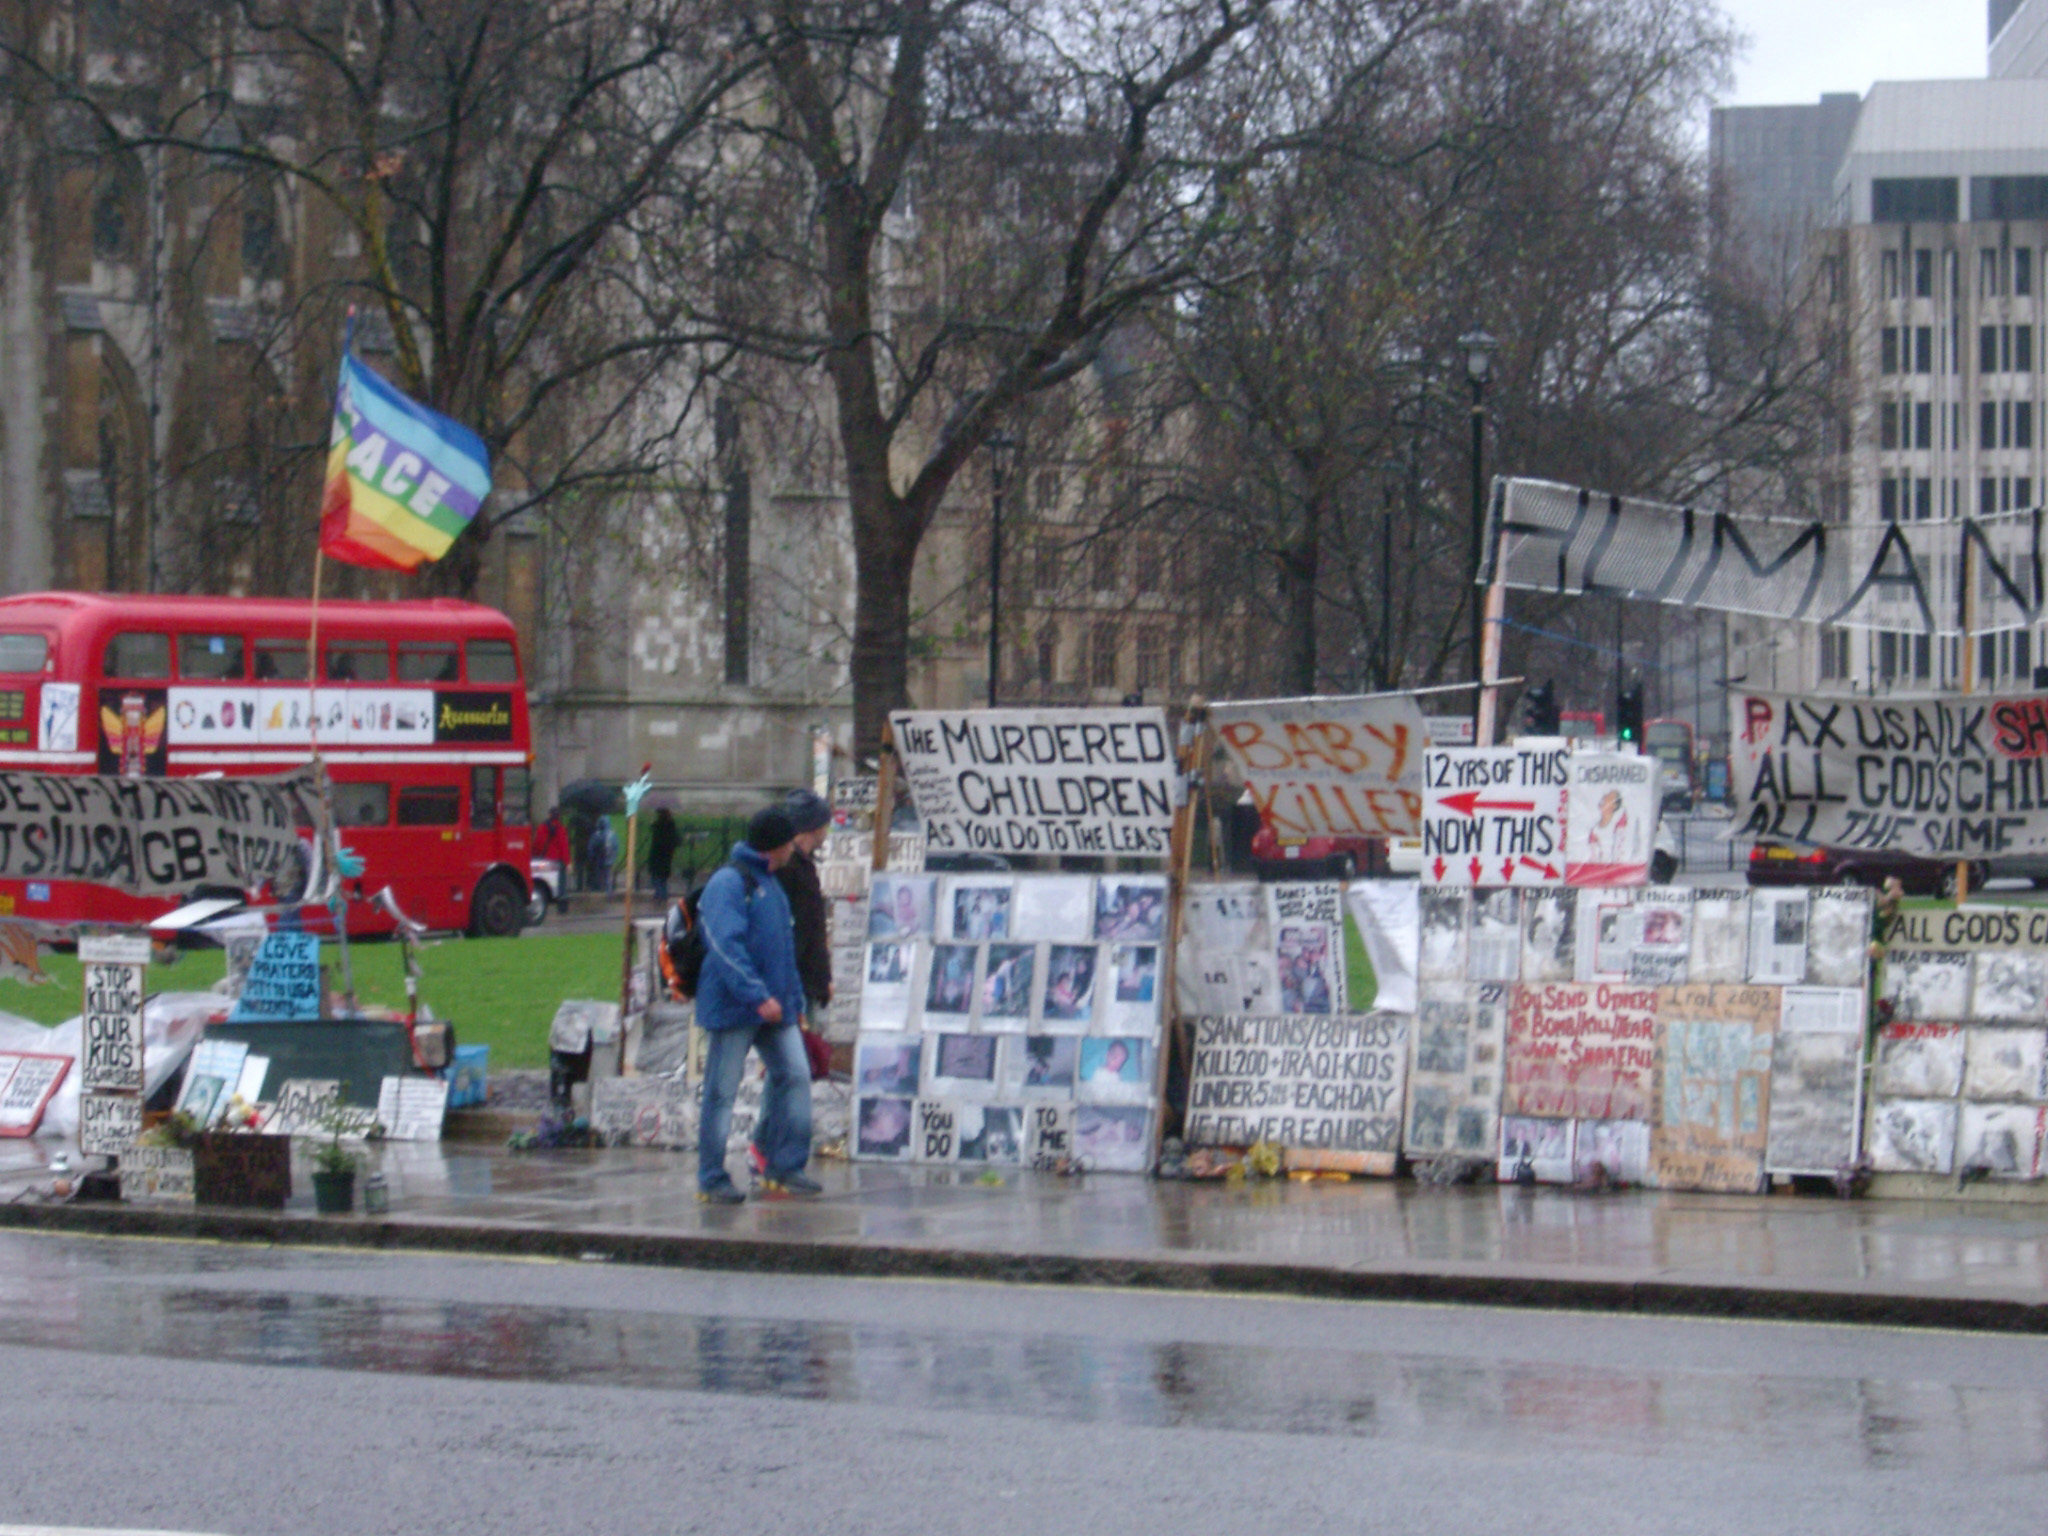 Streetside demonstartion in London with a pedestrian walking past a display of placards and slogans on a wet rainy day